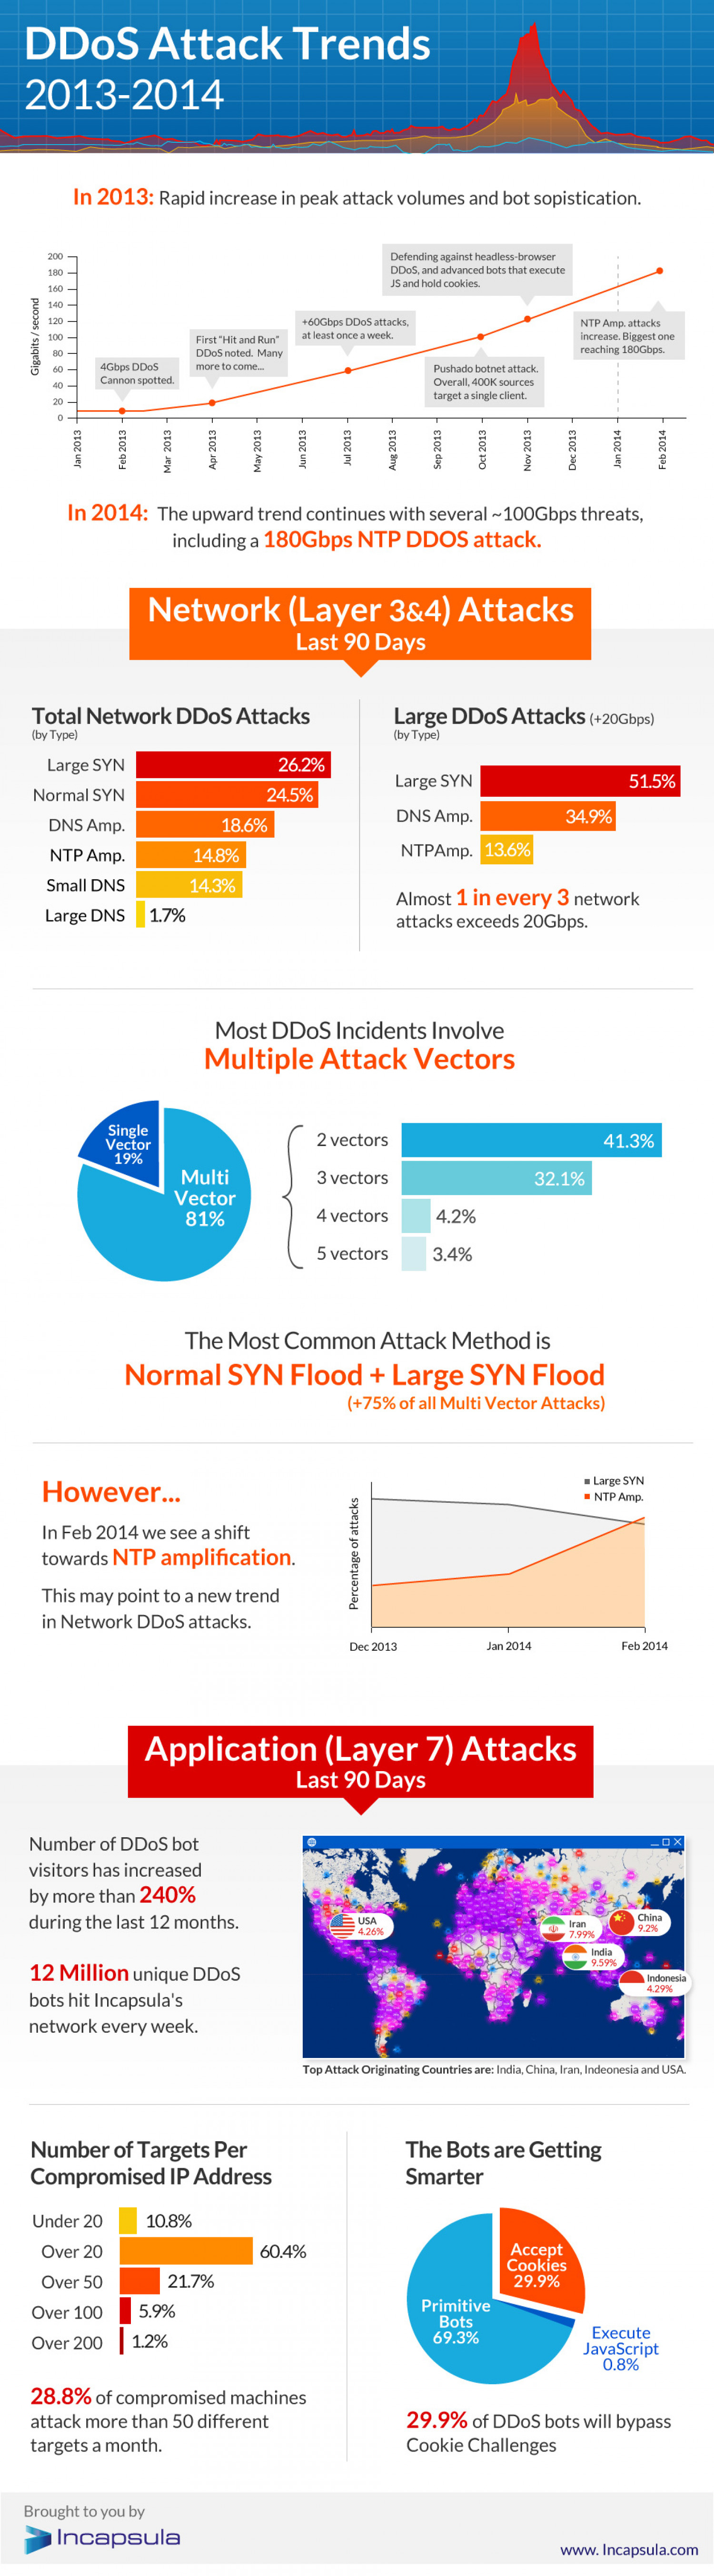 DDoS Trends 2013-14 Infographic